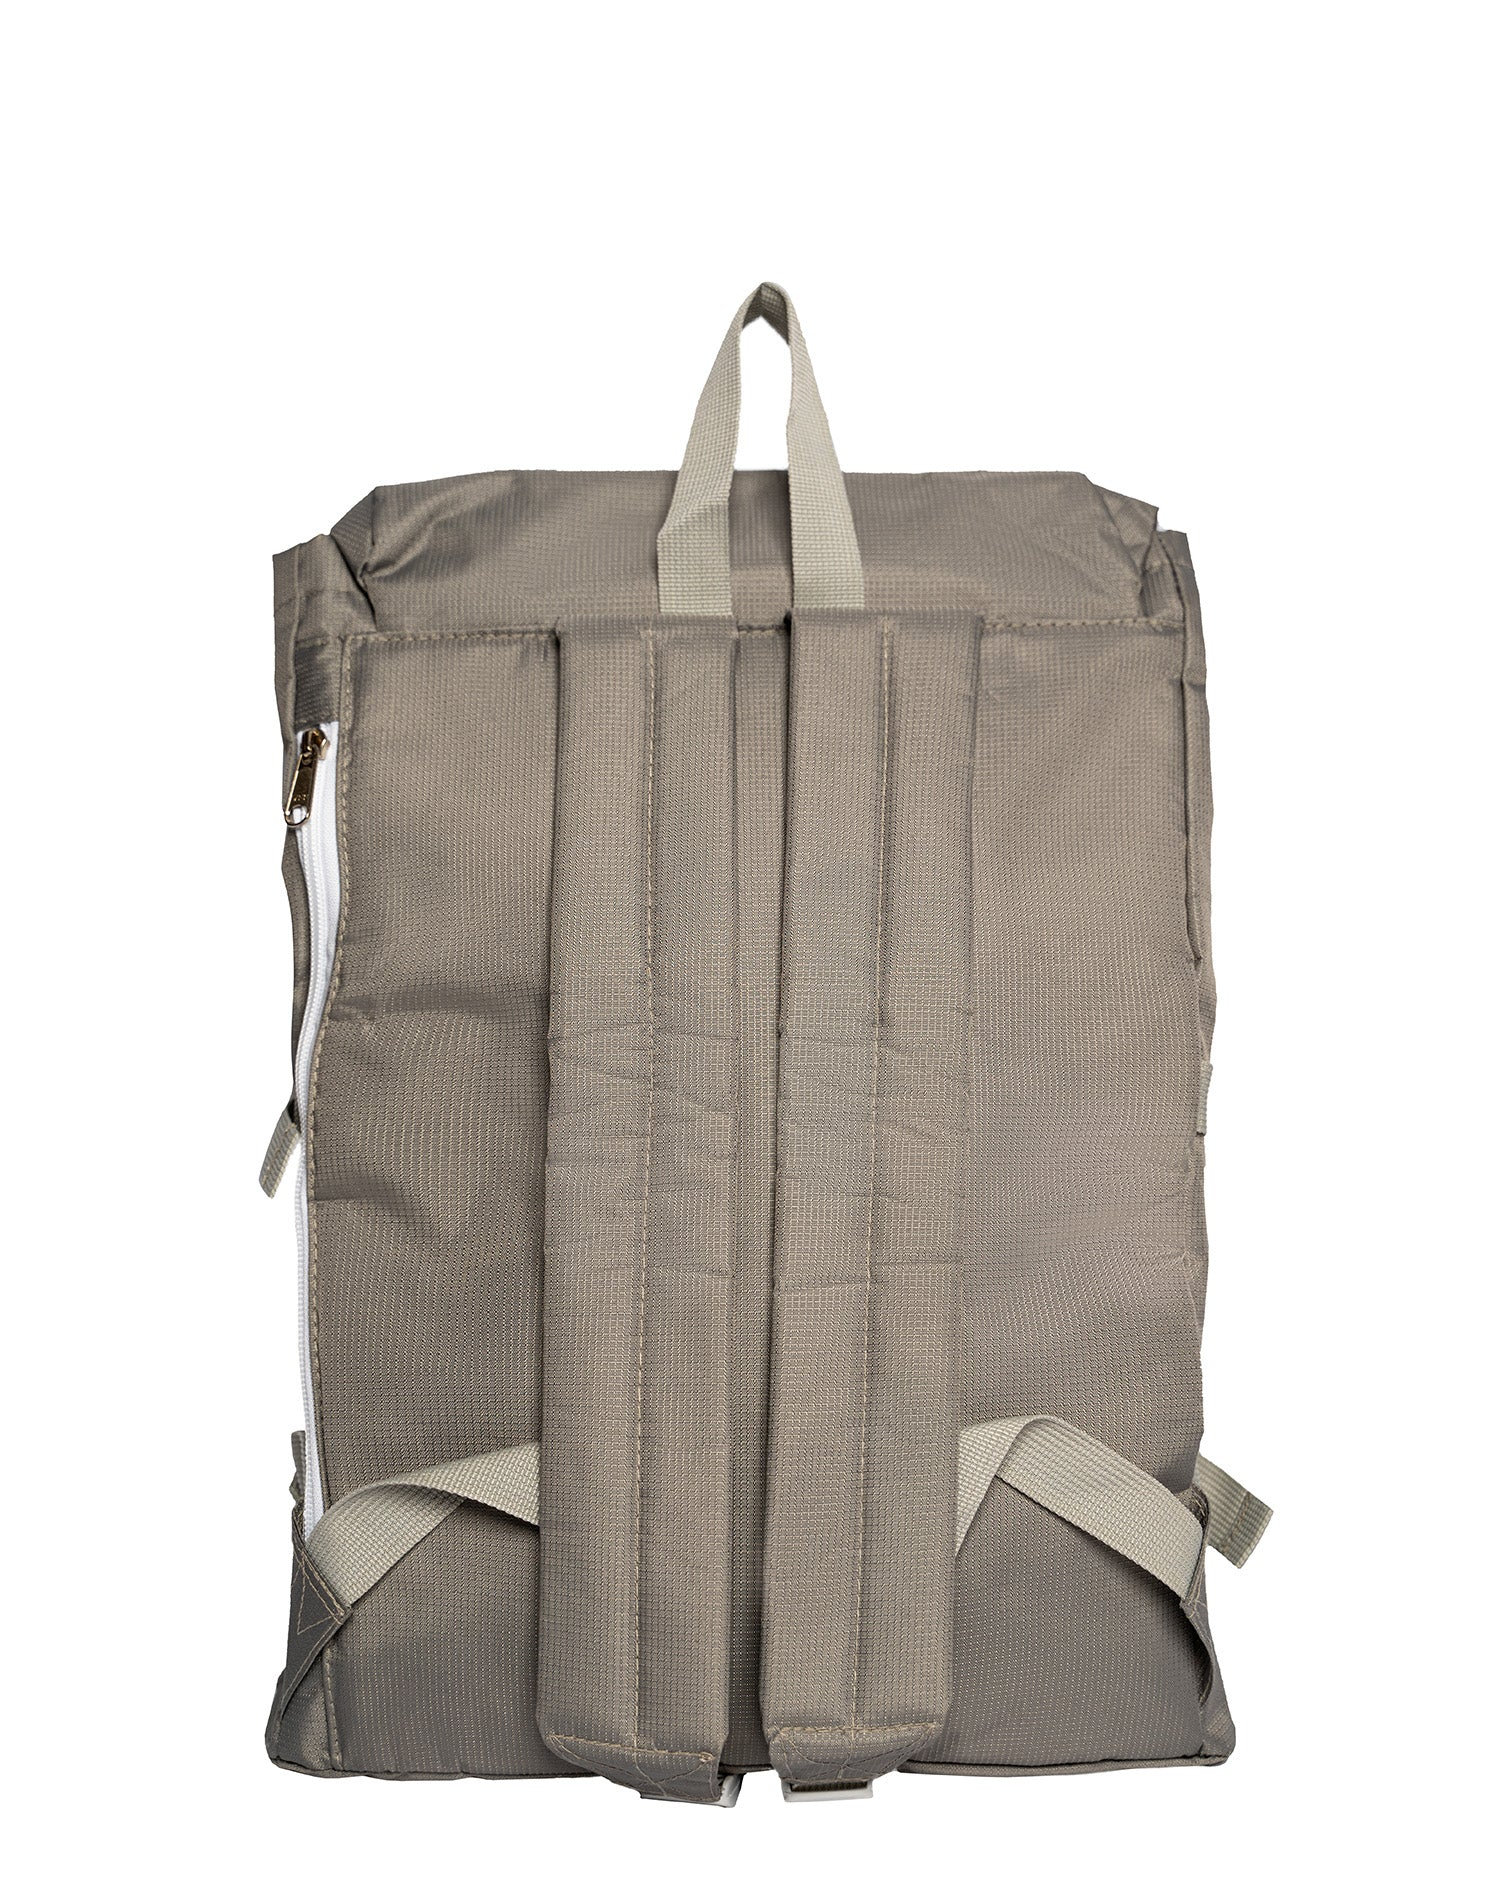 The Grey Moonset Waterproof Backpack.灰色防水背囊